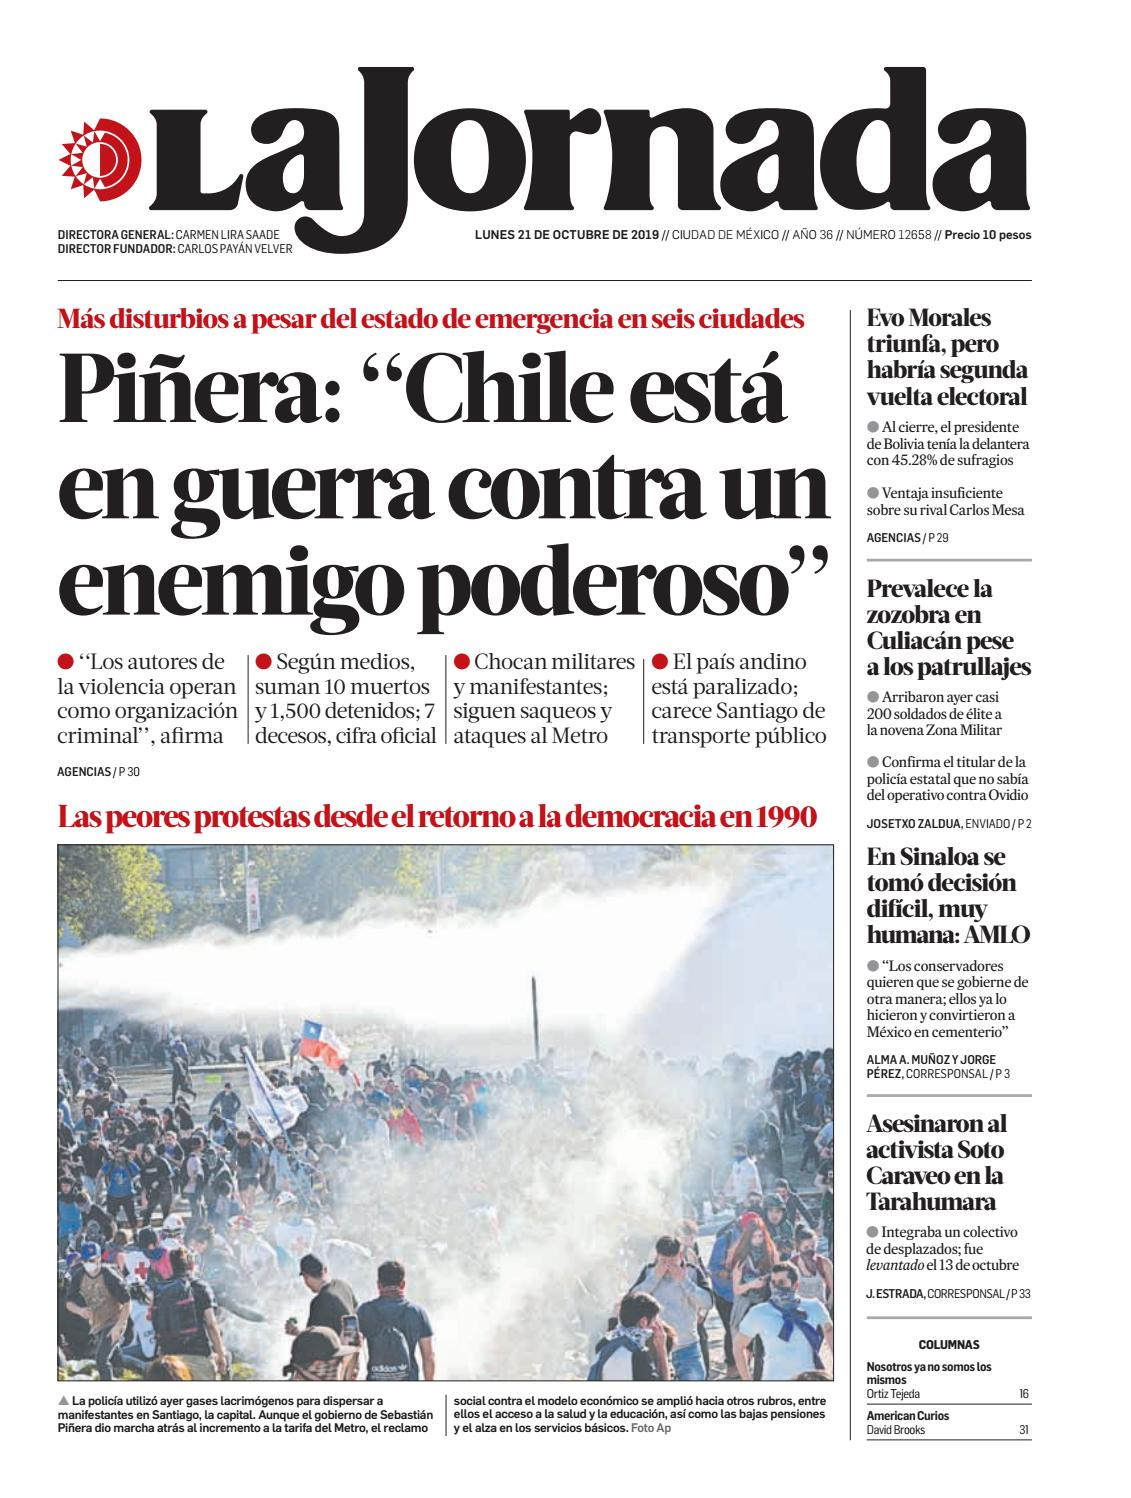 La Jornada 10 21 2019 By La Jornada Issuu